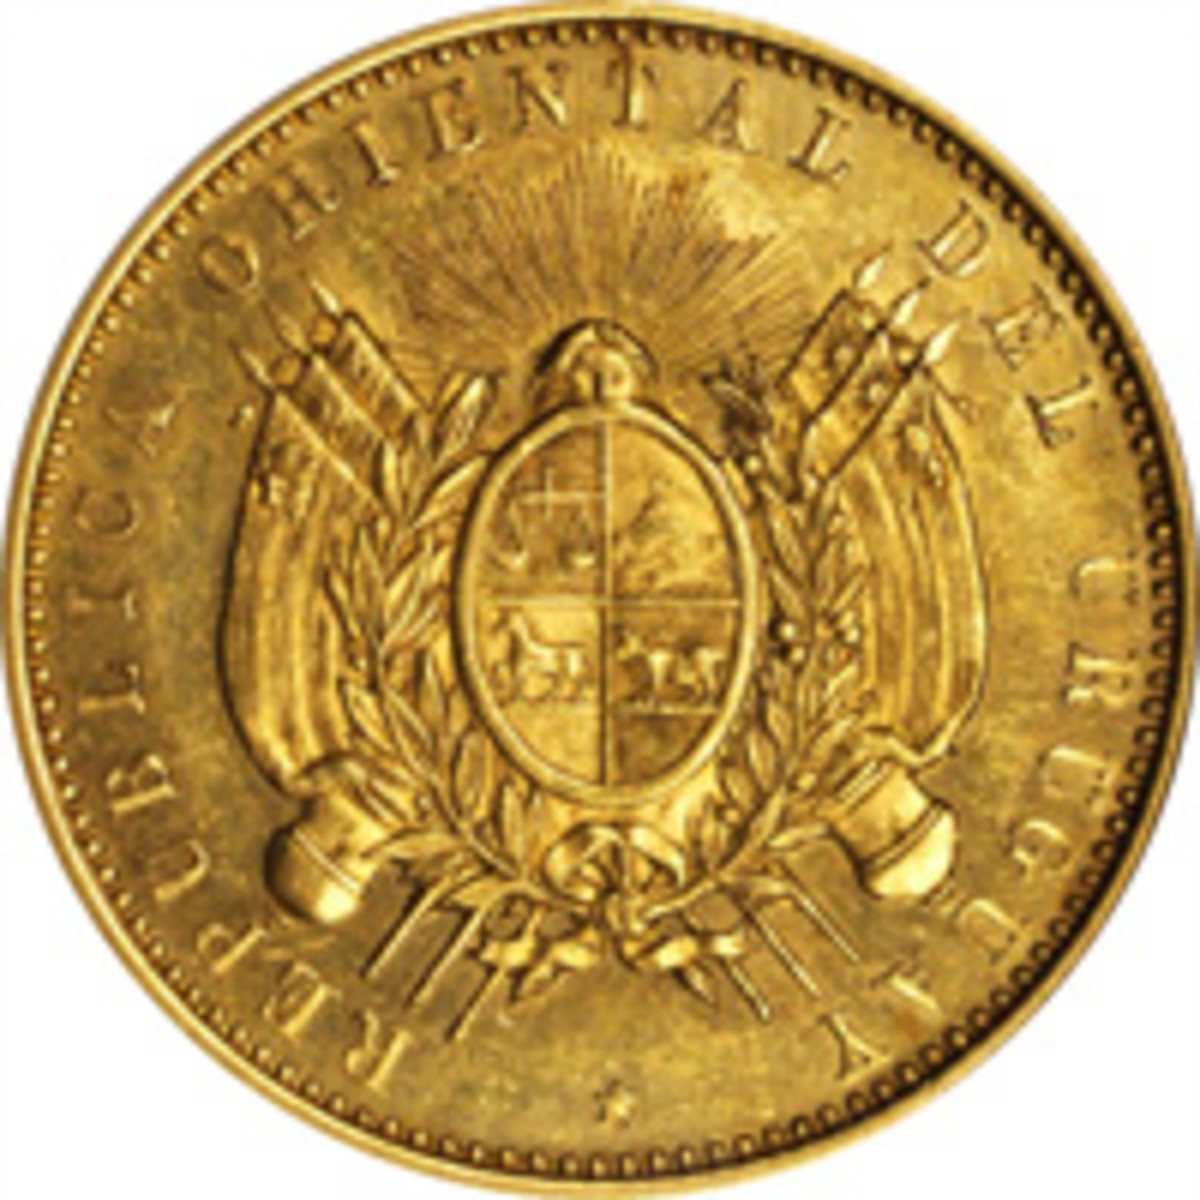 Extremely rare 1870 Uruguay pattern gold doblon (= 10 pesos) of 1870 and Freiberg plate coin, ex Newcomer-Clapp-Eliasberg collections. It was bid up to $66,000 in NGC PROOF-62. (Image courtesy Stack's Bowers)